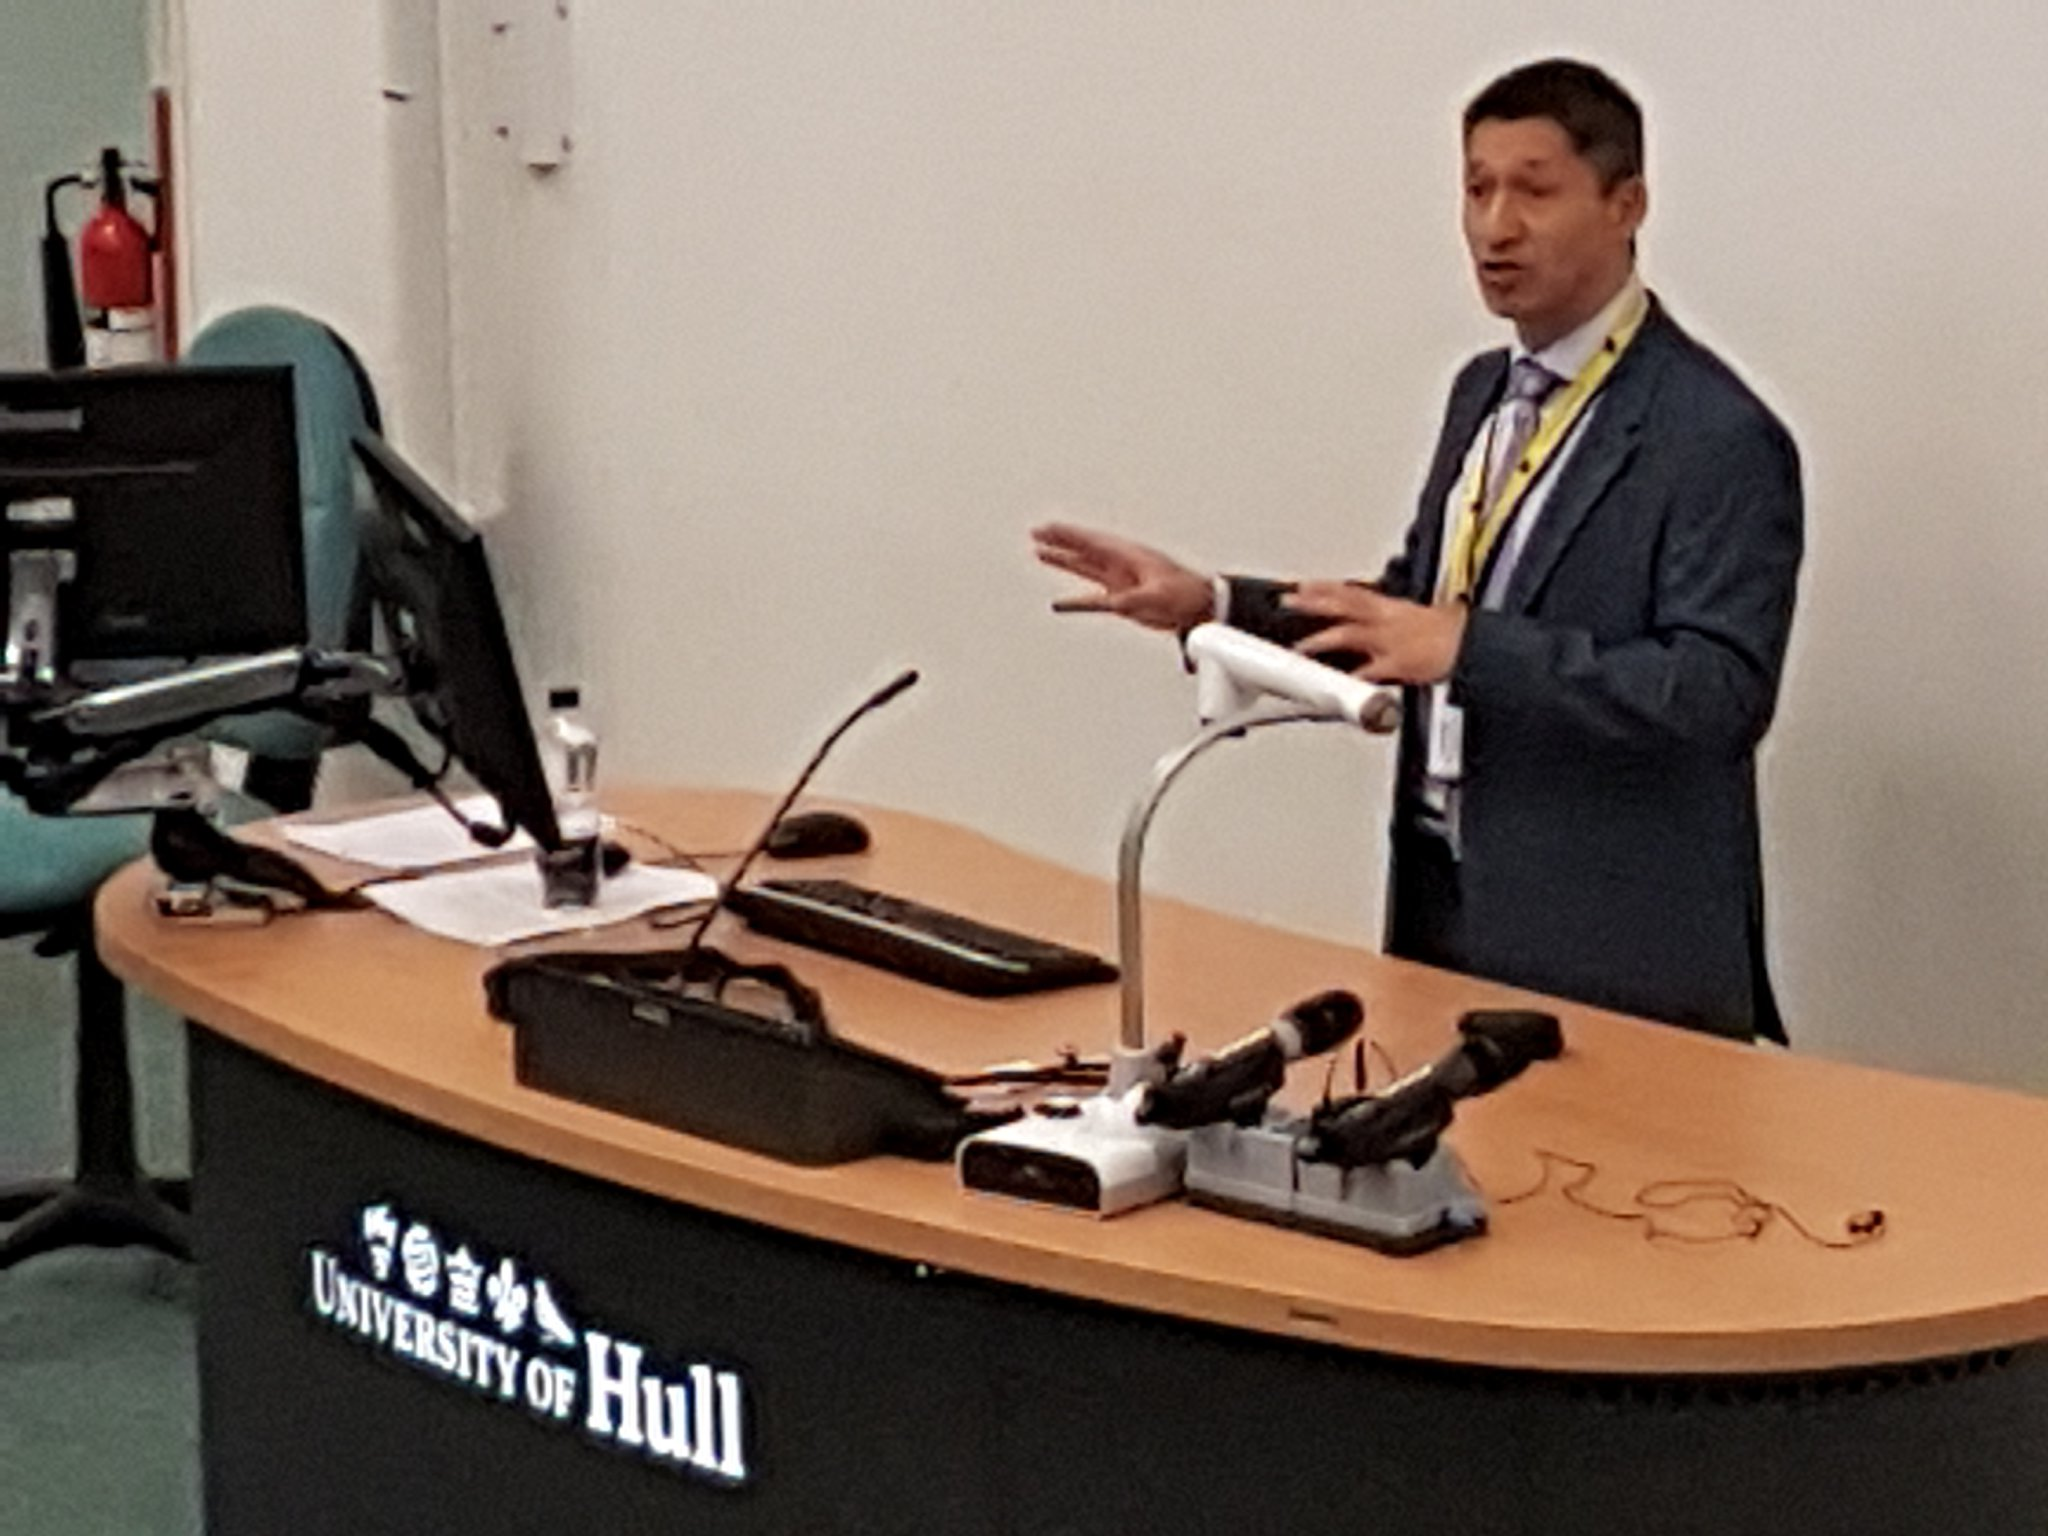 #aldcon ... we have kicked off. Warmly welcomed by Paul Chin and the fantastic library team @HullUni_Library. https://t.co/dRQhud0JtK